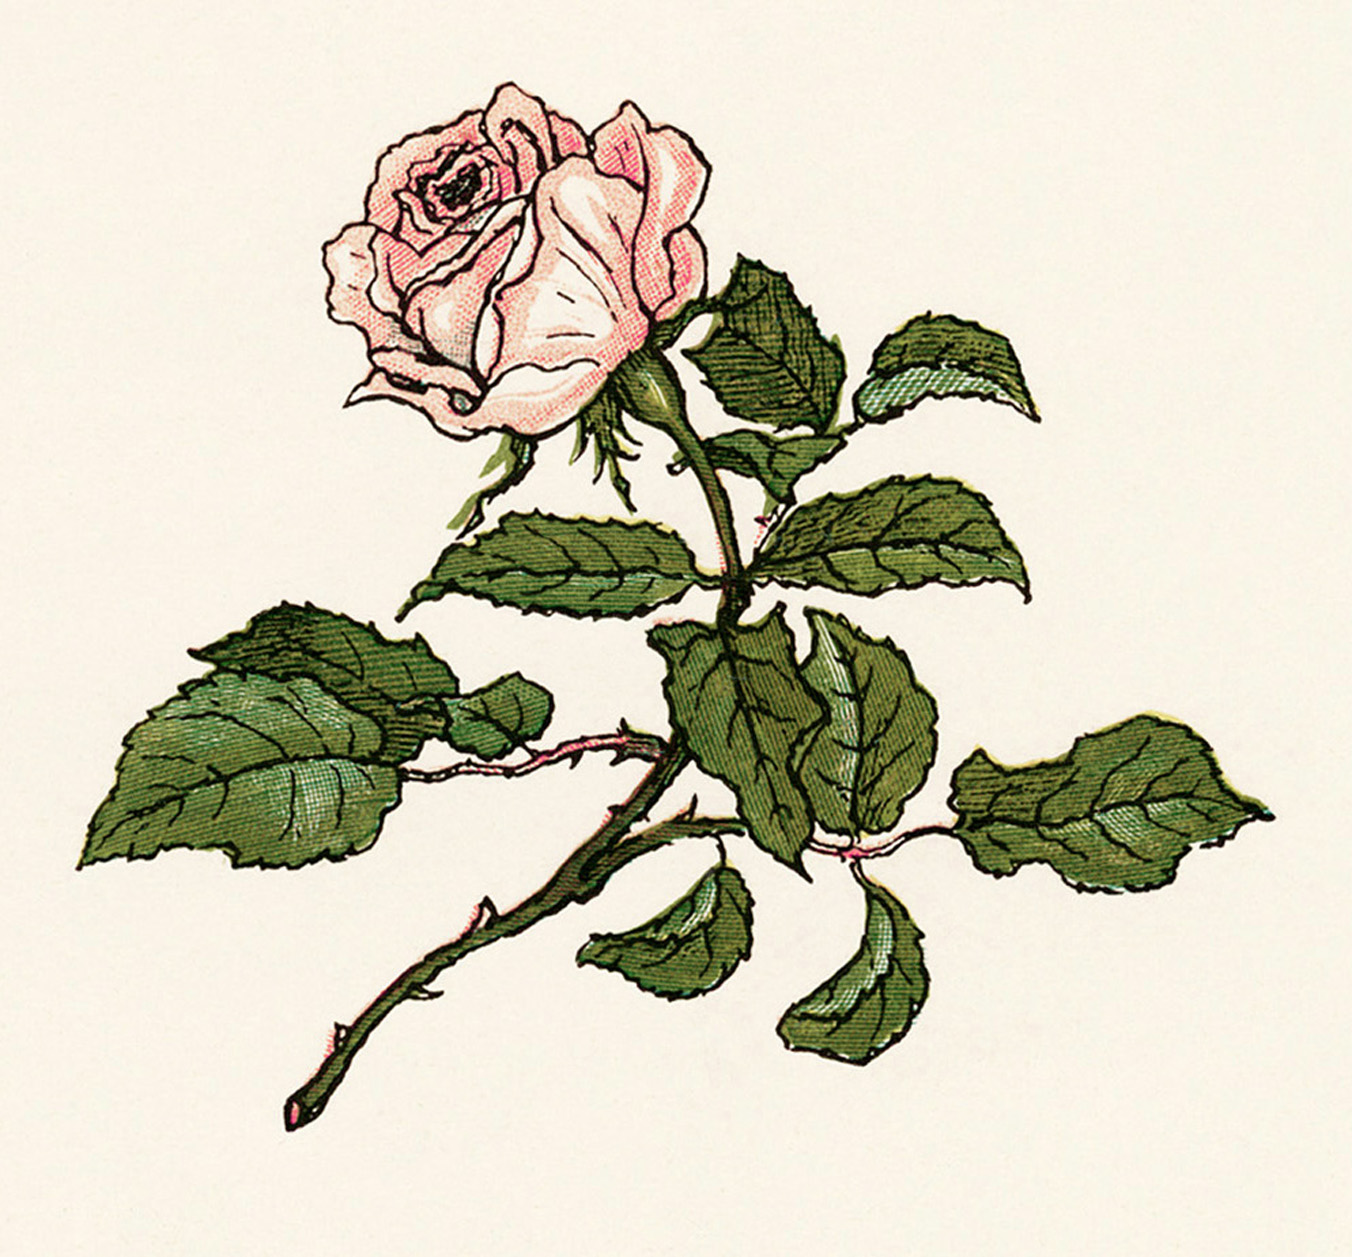 pink rose clipart, Kate Greenaway, vintage rose illustration, printable flower image, public domain floral graphics